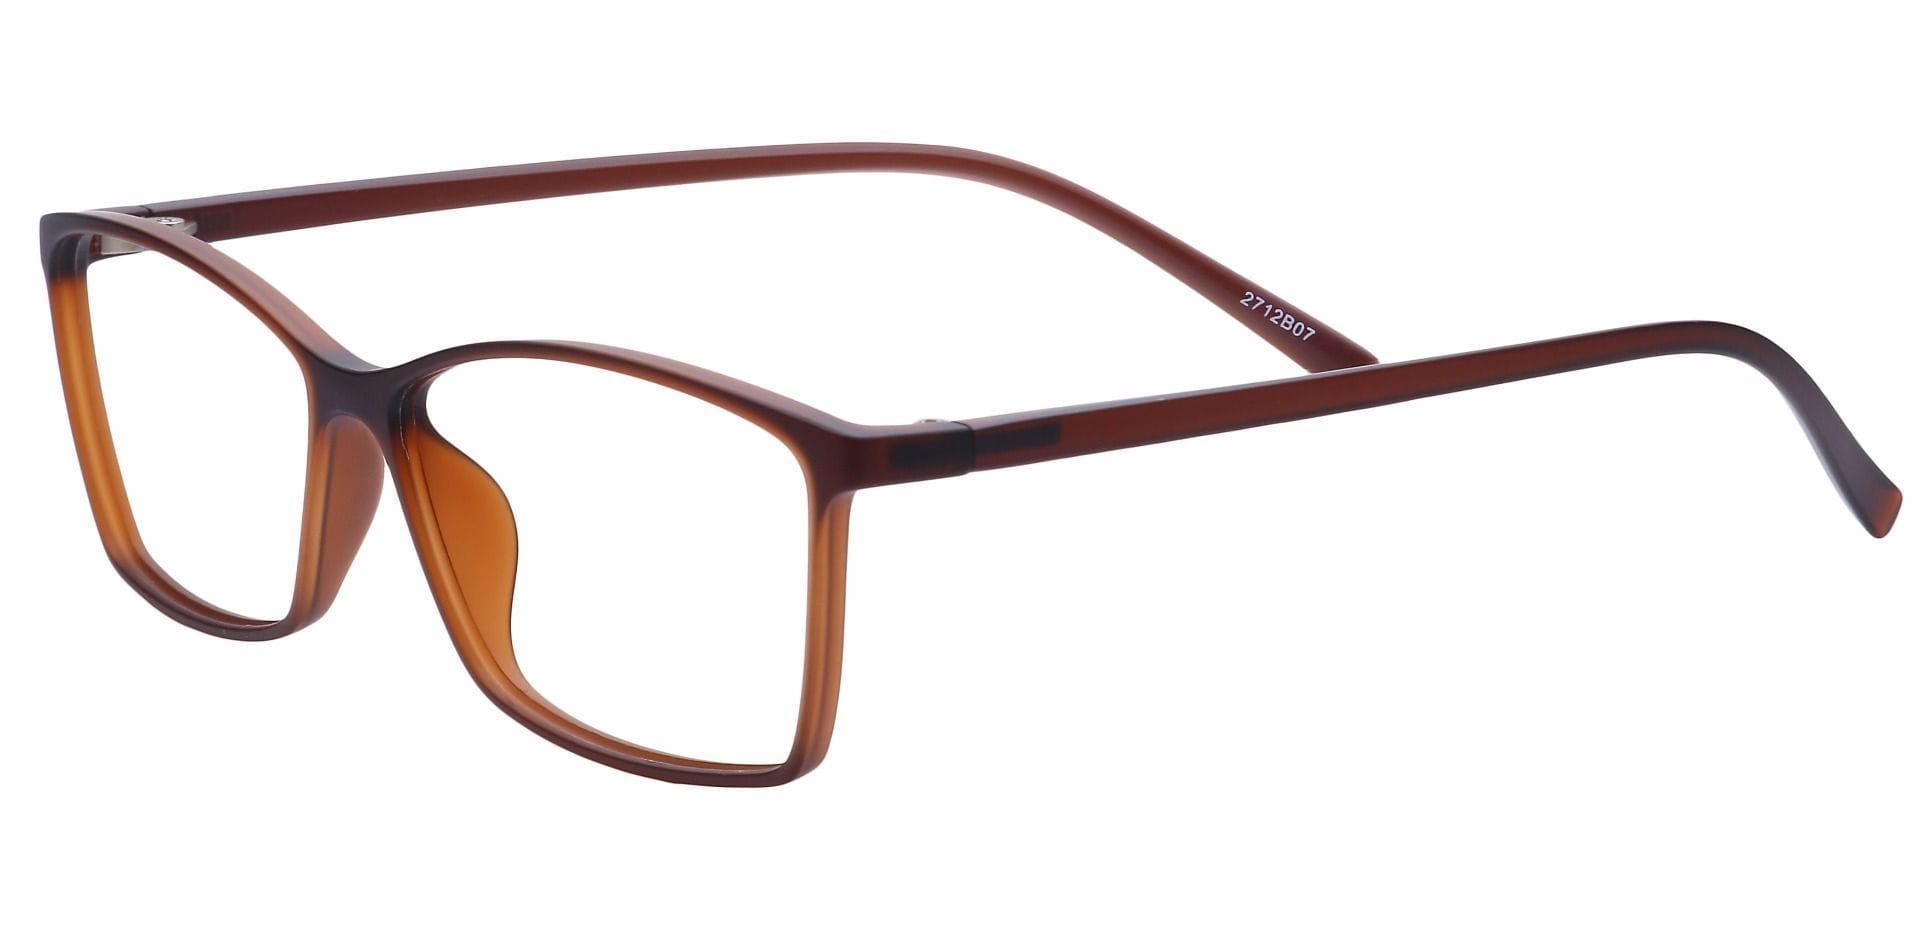 Align Rectangle Blue Light Blocking Glasses -  Matte Brown